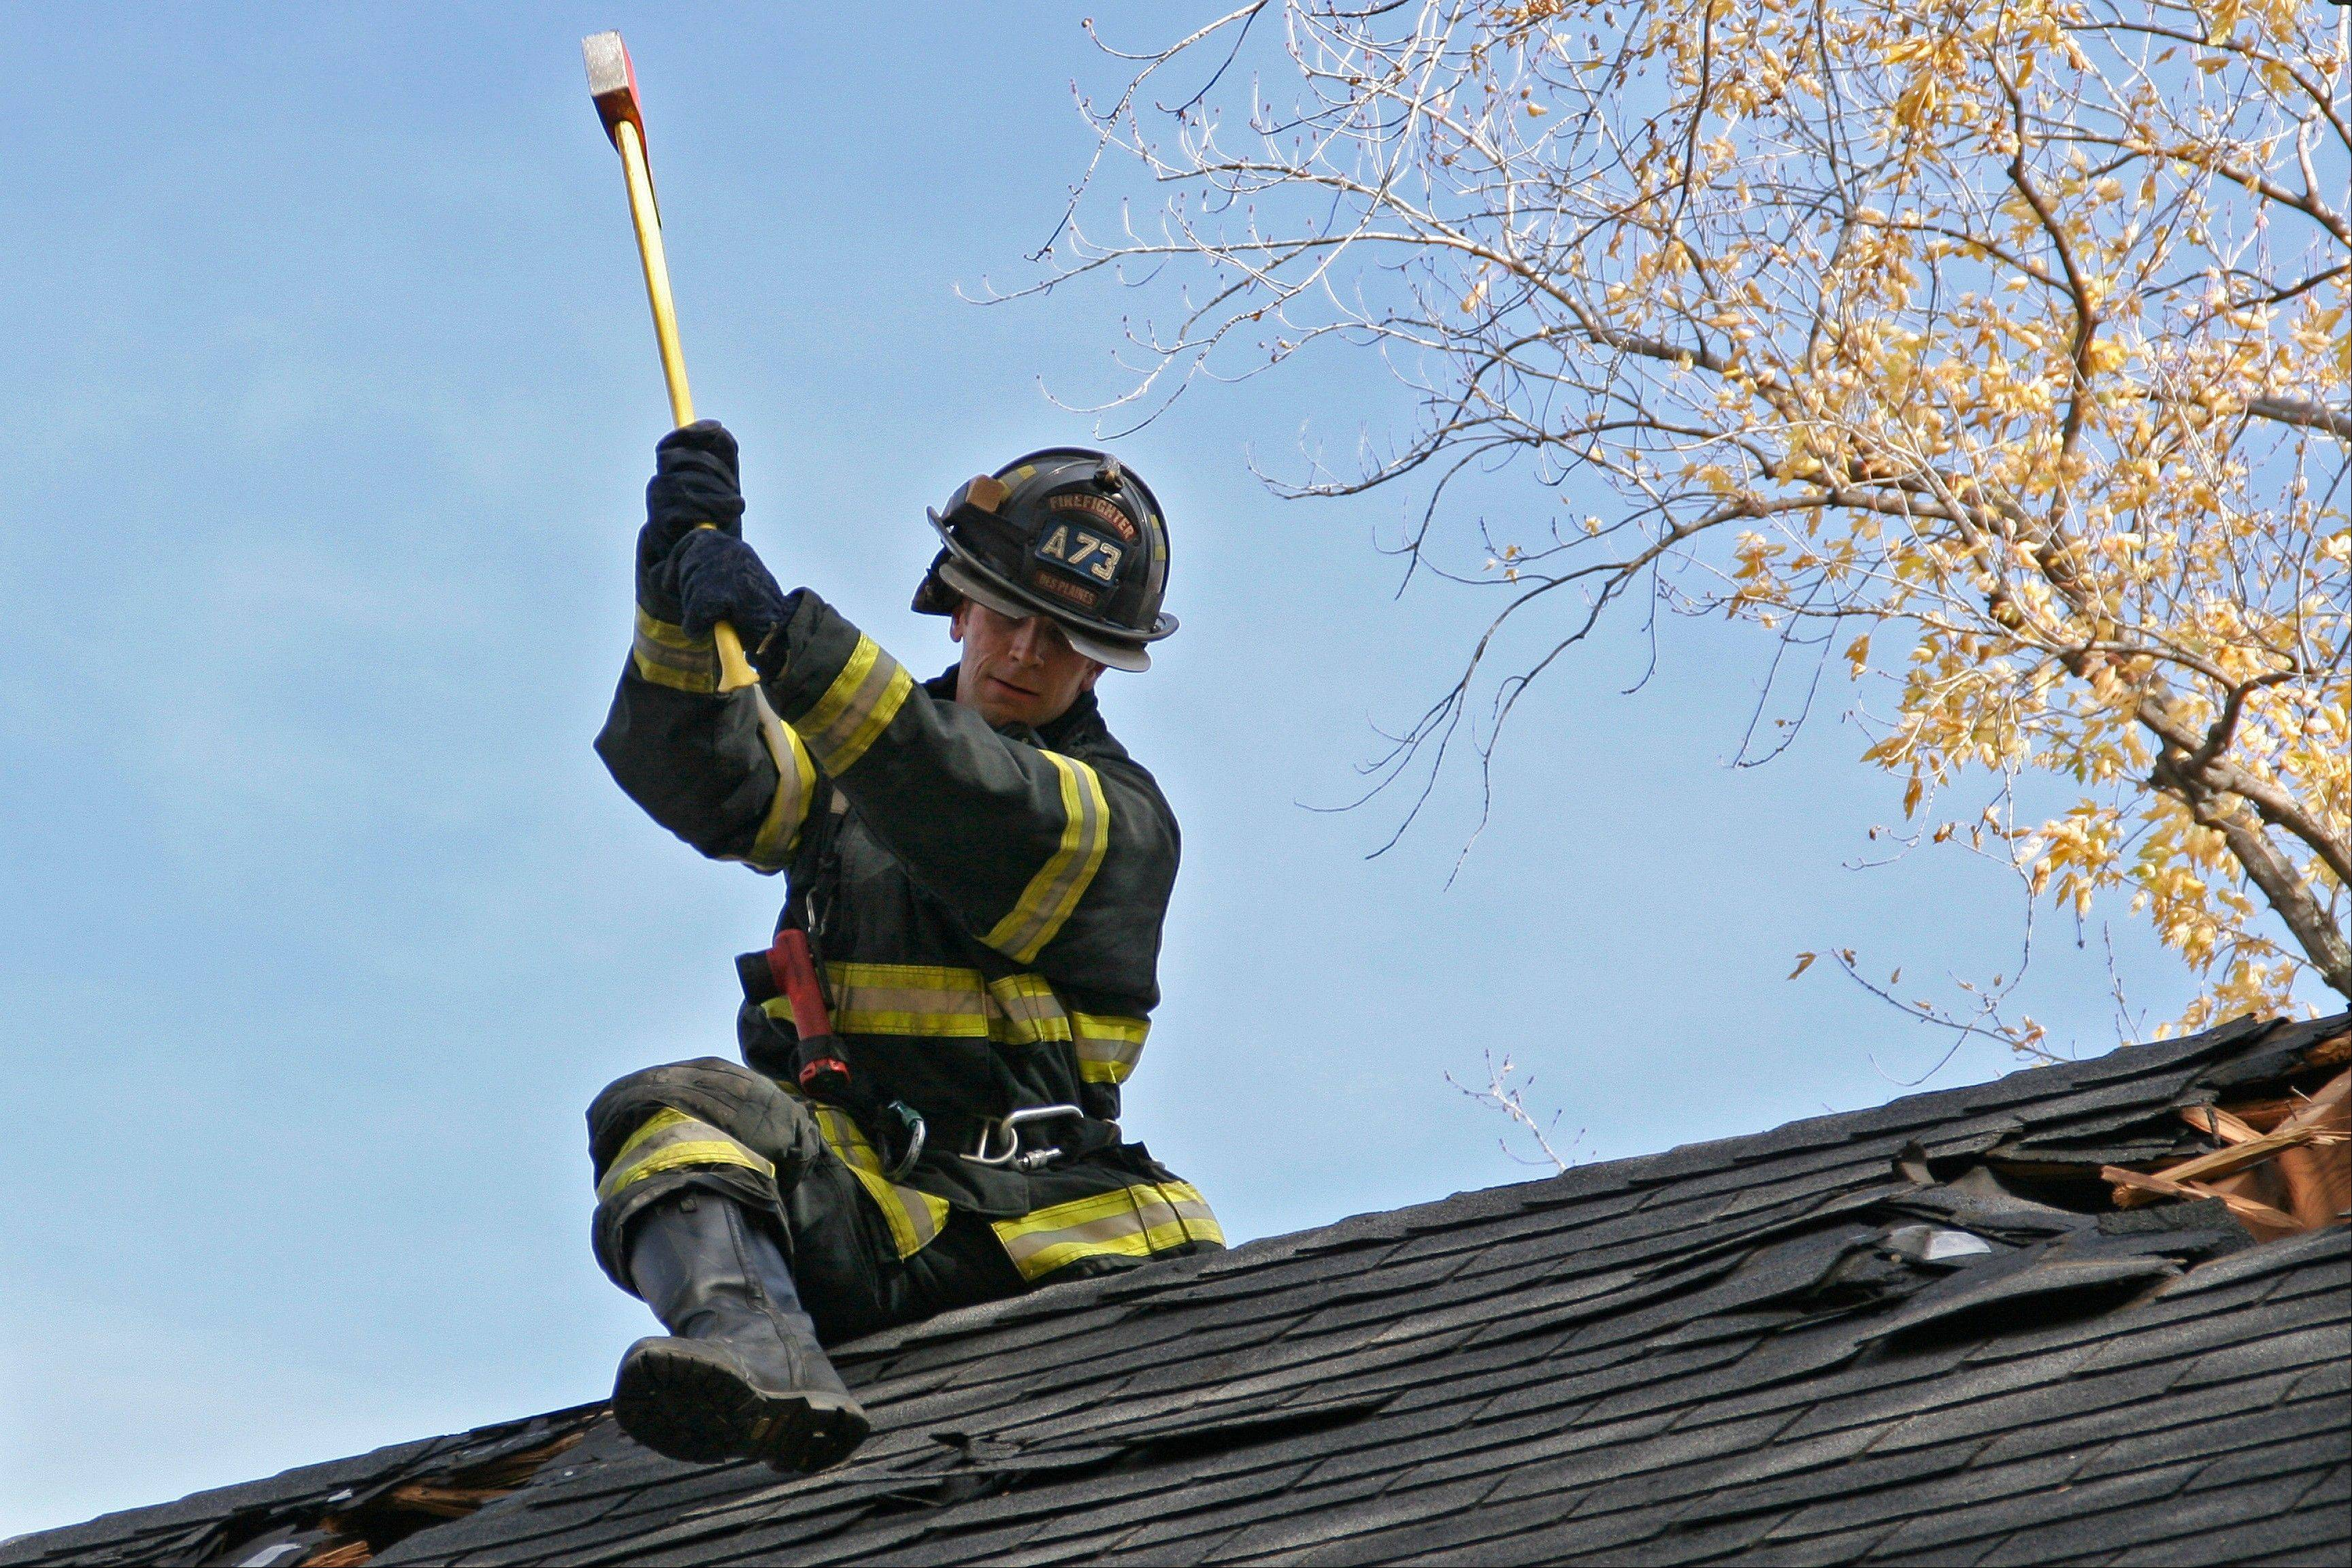 Des Plaines Fire Department personnel train on the roof.